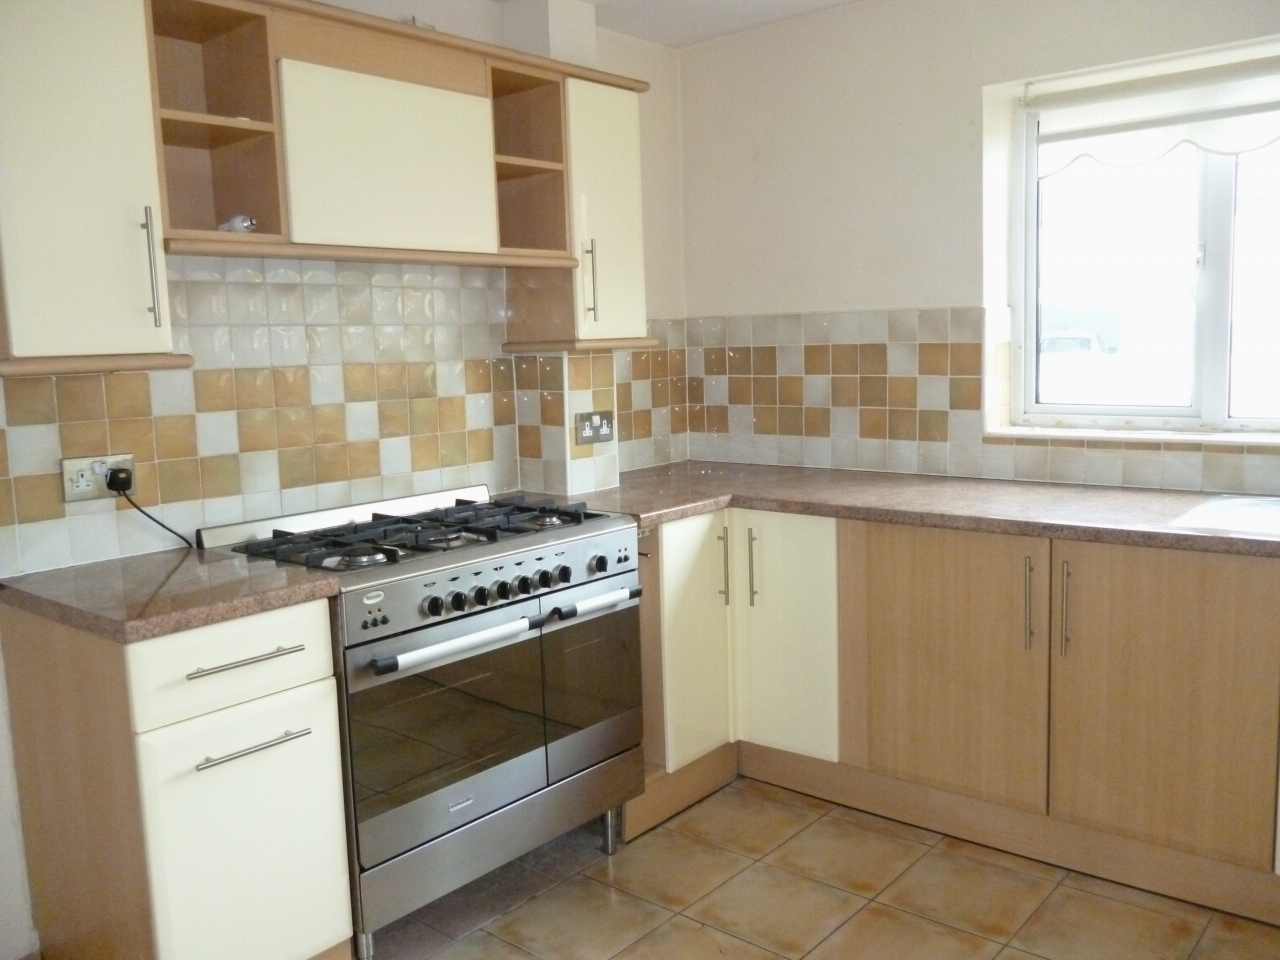 3 bedroom apartment flat/apartment SSTC in Leicester - Photograph 7.